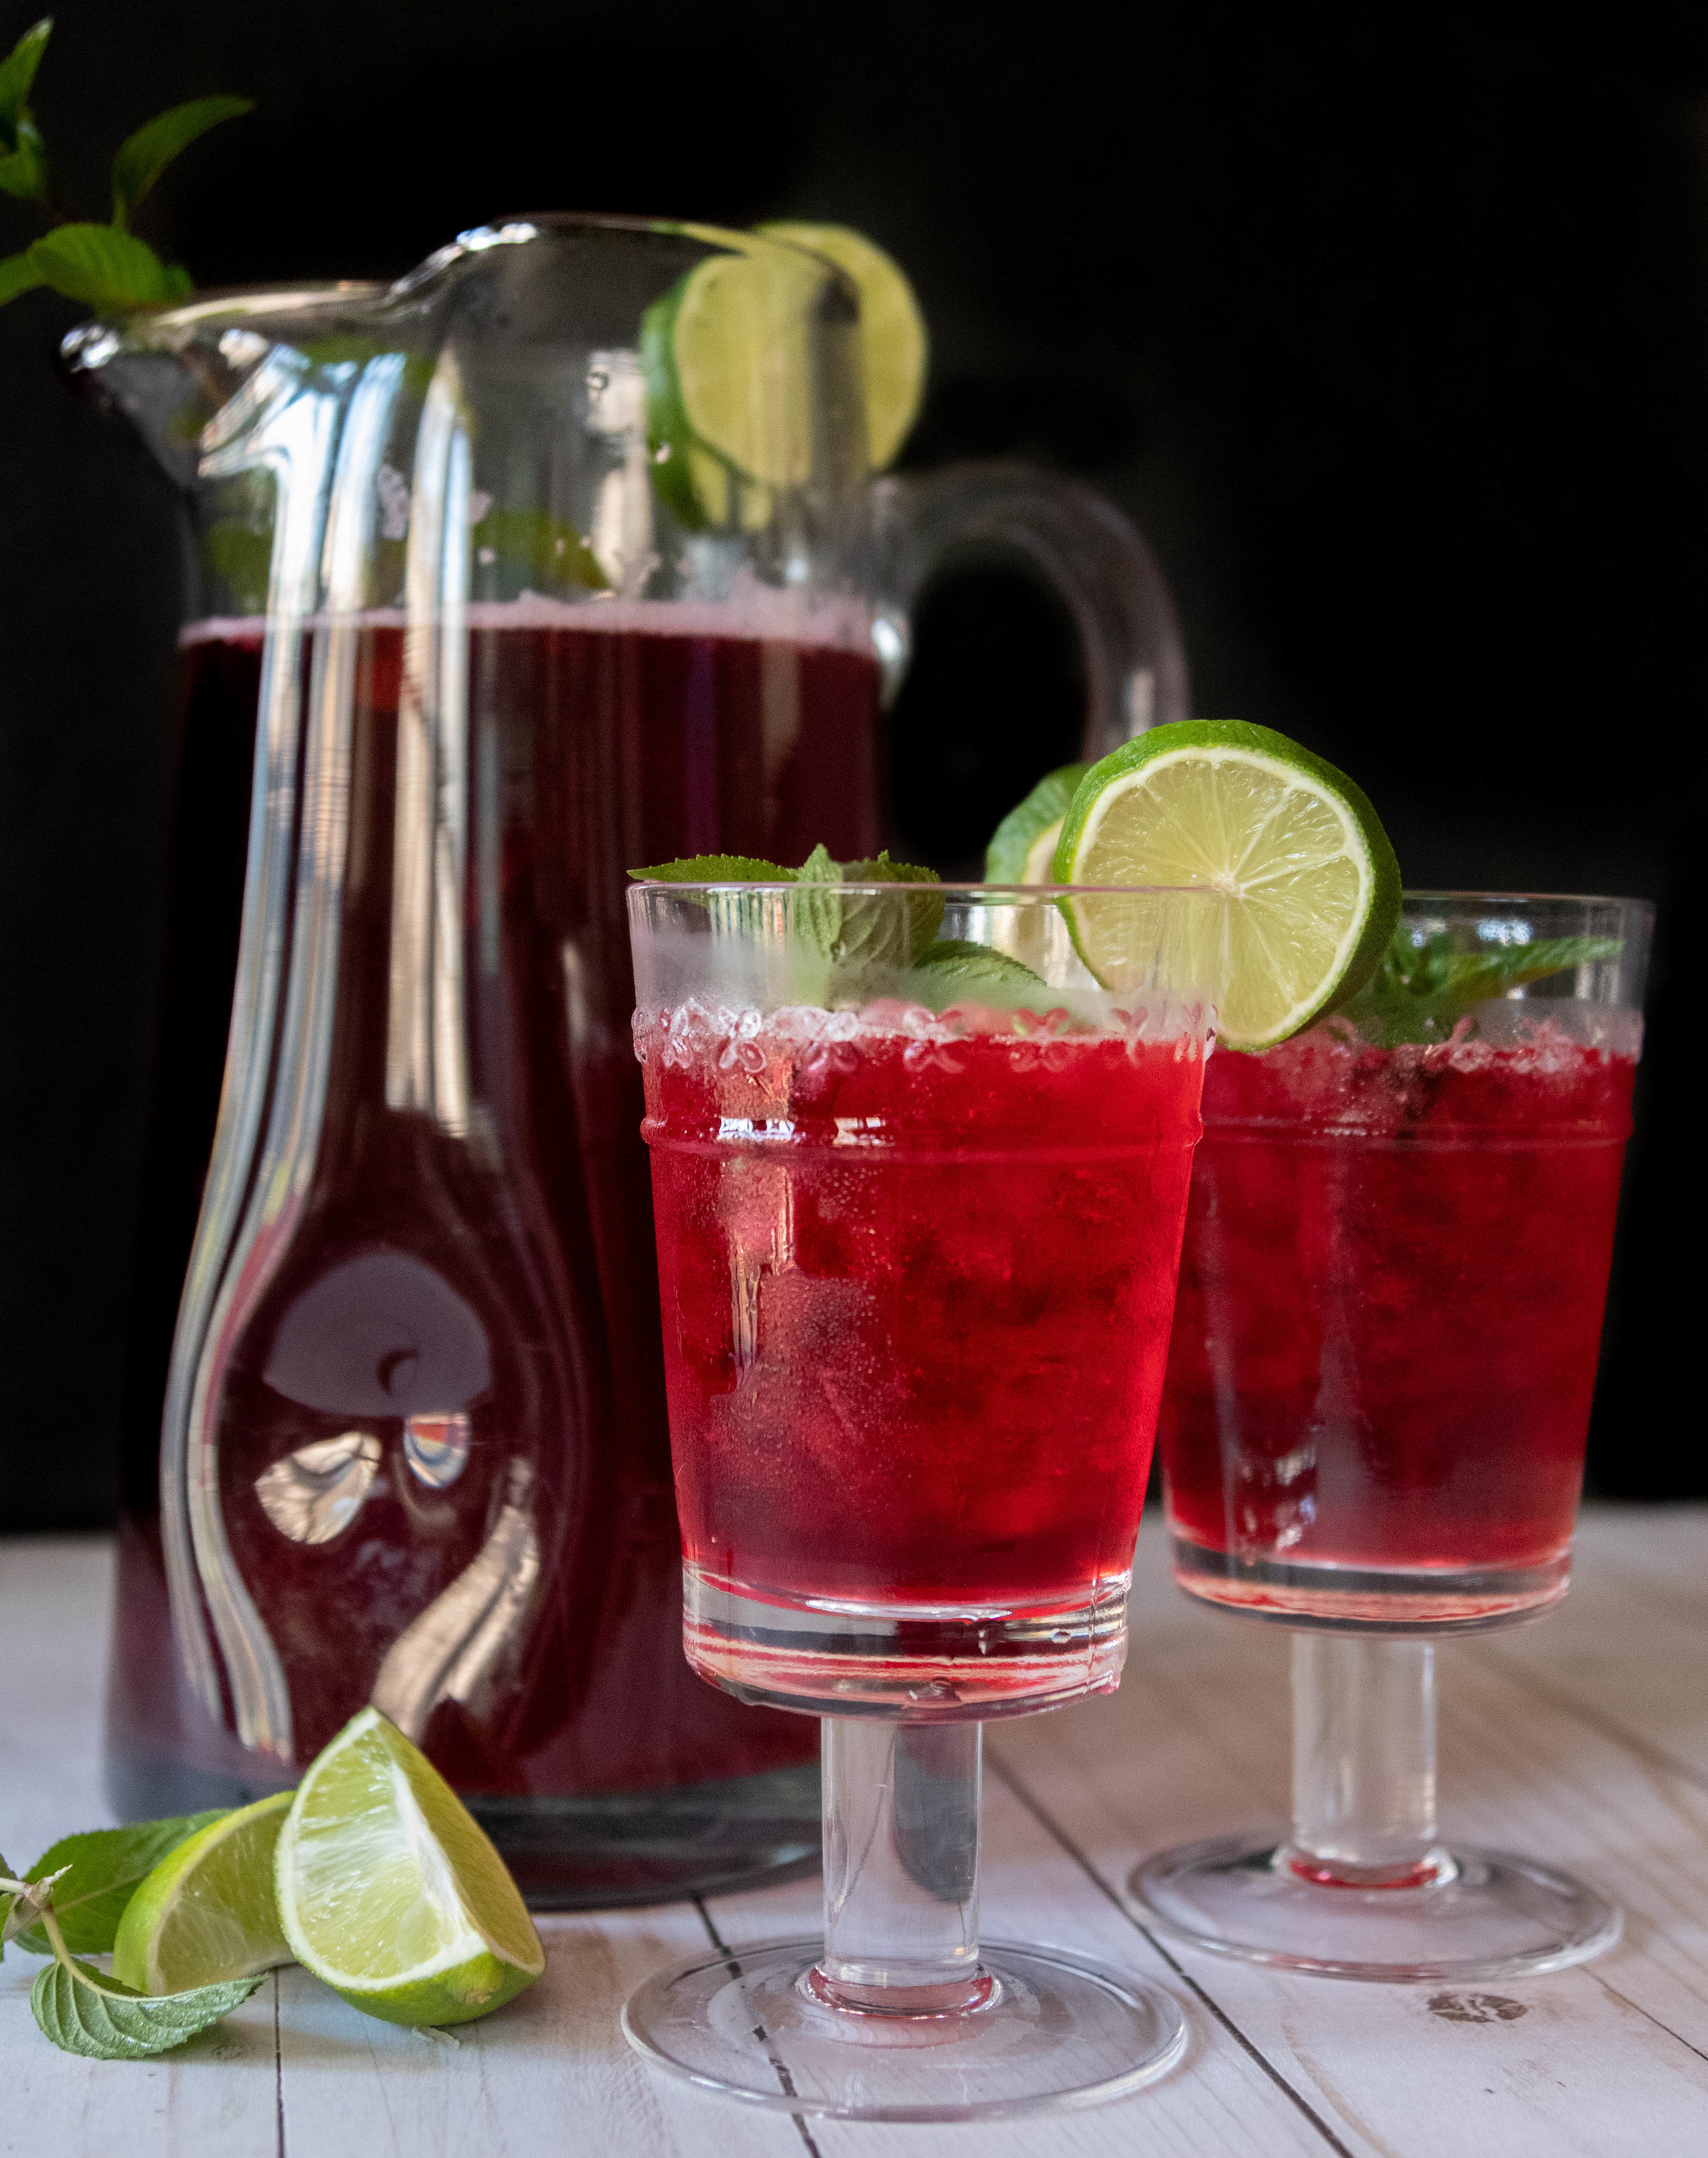 A couple cold glasses of hibiscus lime tea.